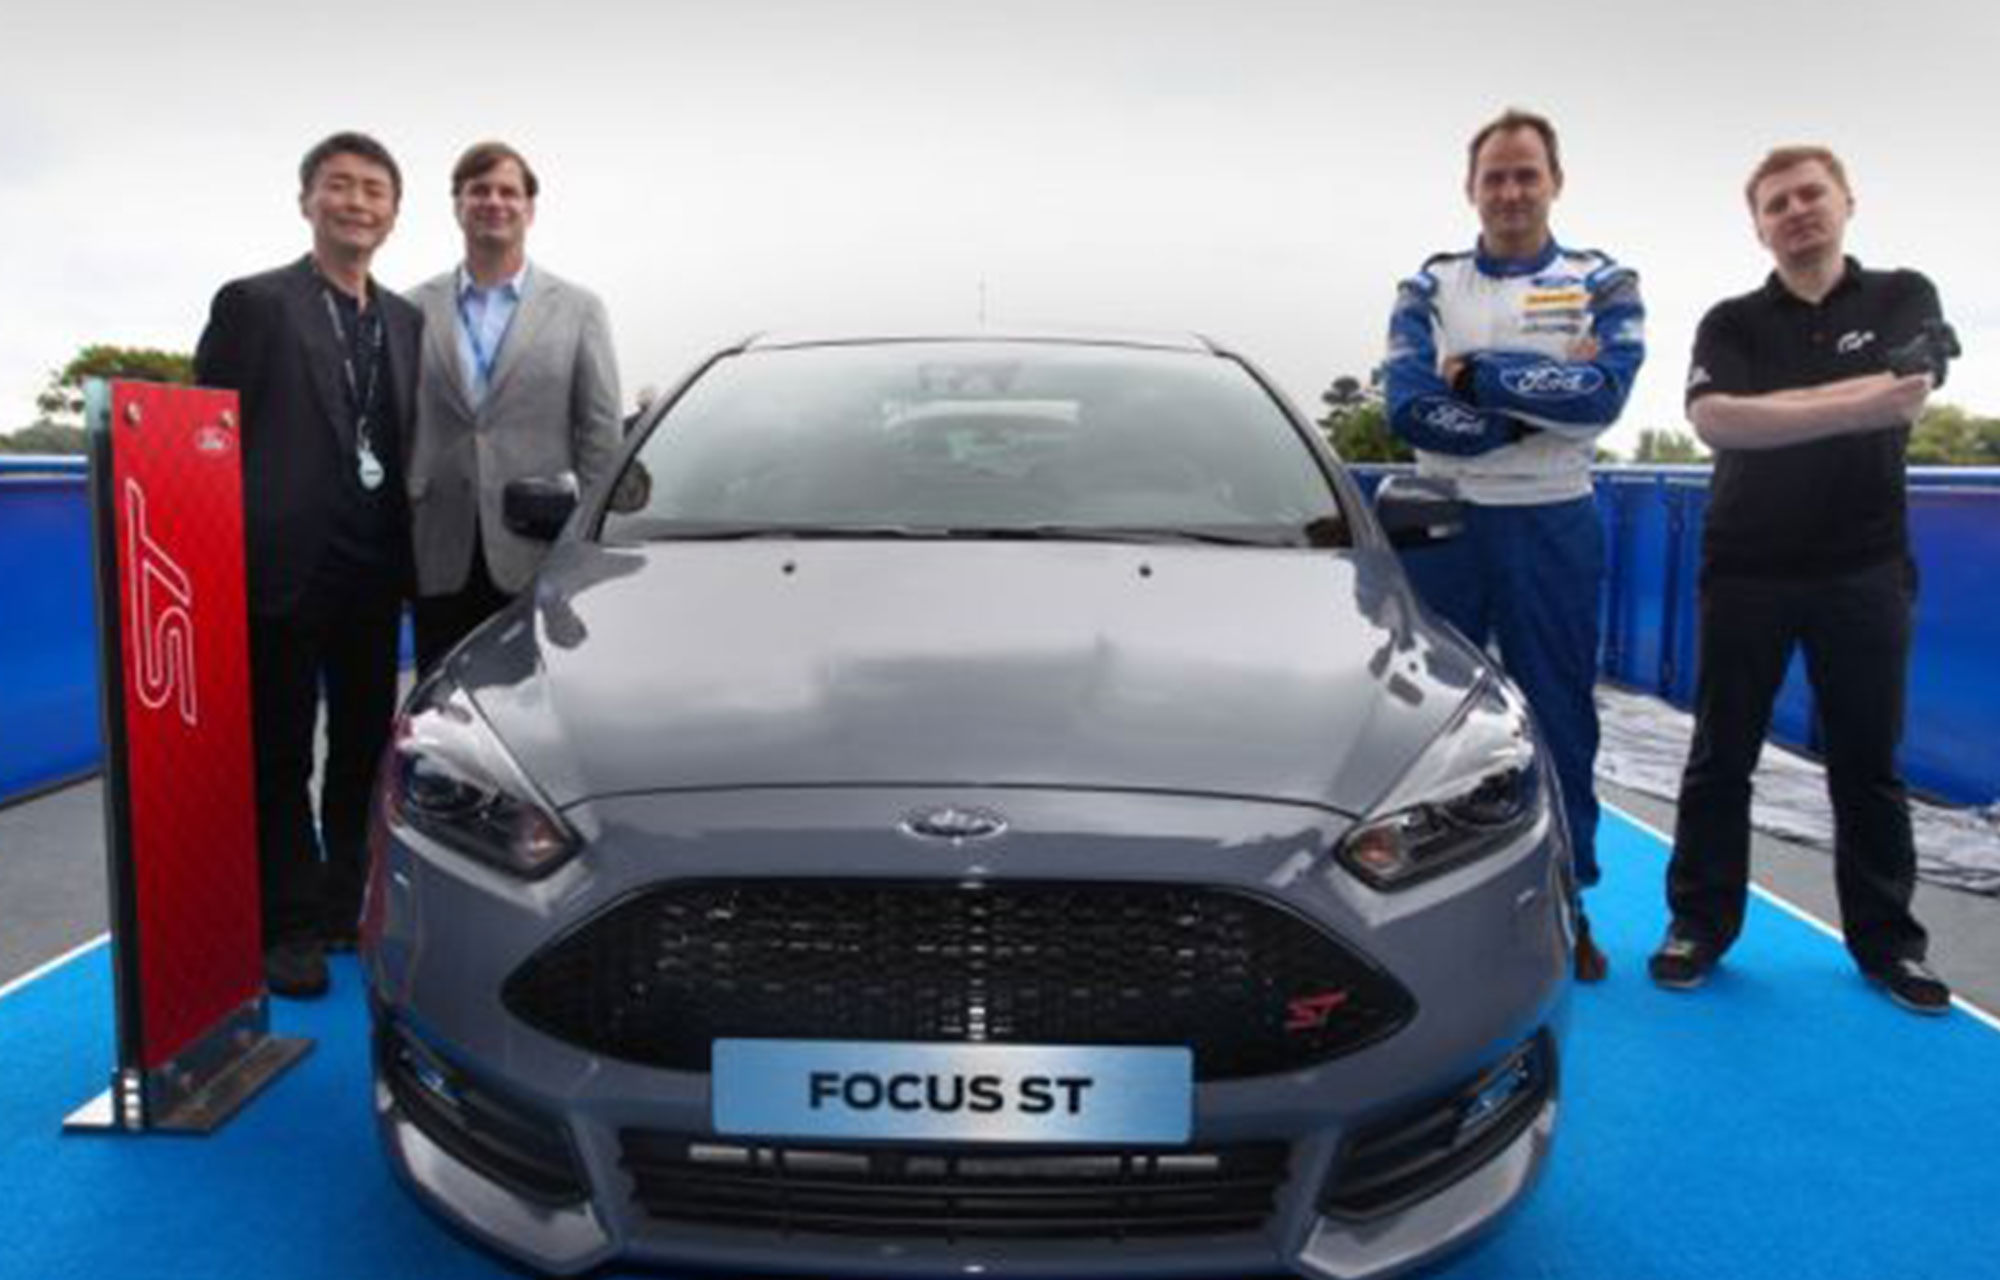 Focus ST revealed by Jim Farley and Grand Tursimo creator Kazunori Yamauchi